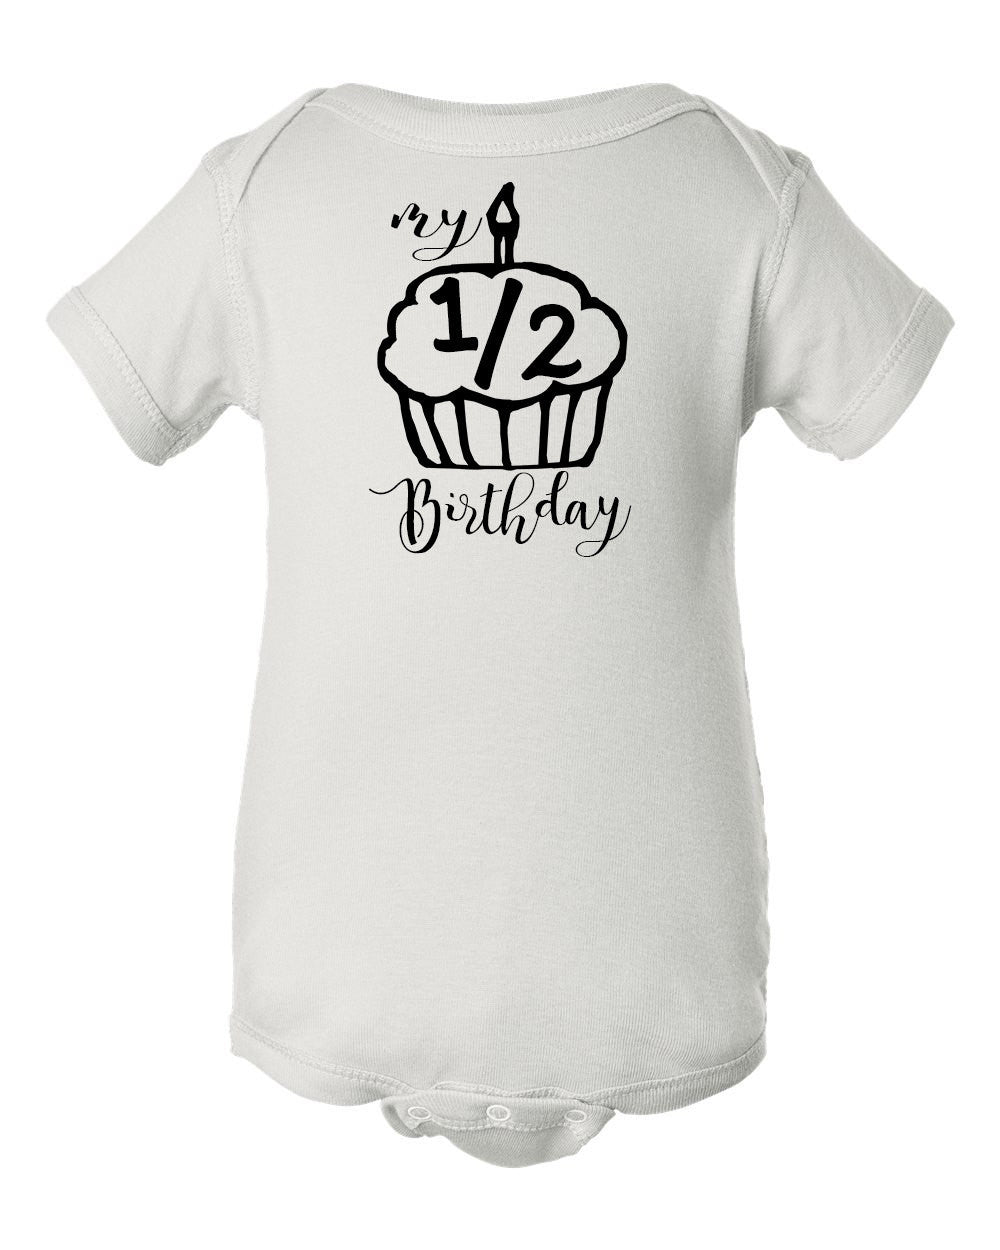 My 1 2 Birthday Shirt Take Home OutfitsChristmas Newborn Baby